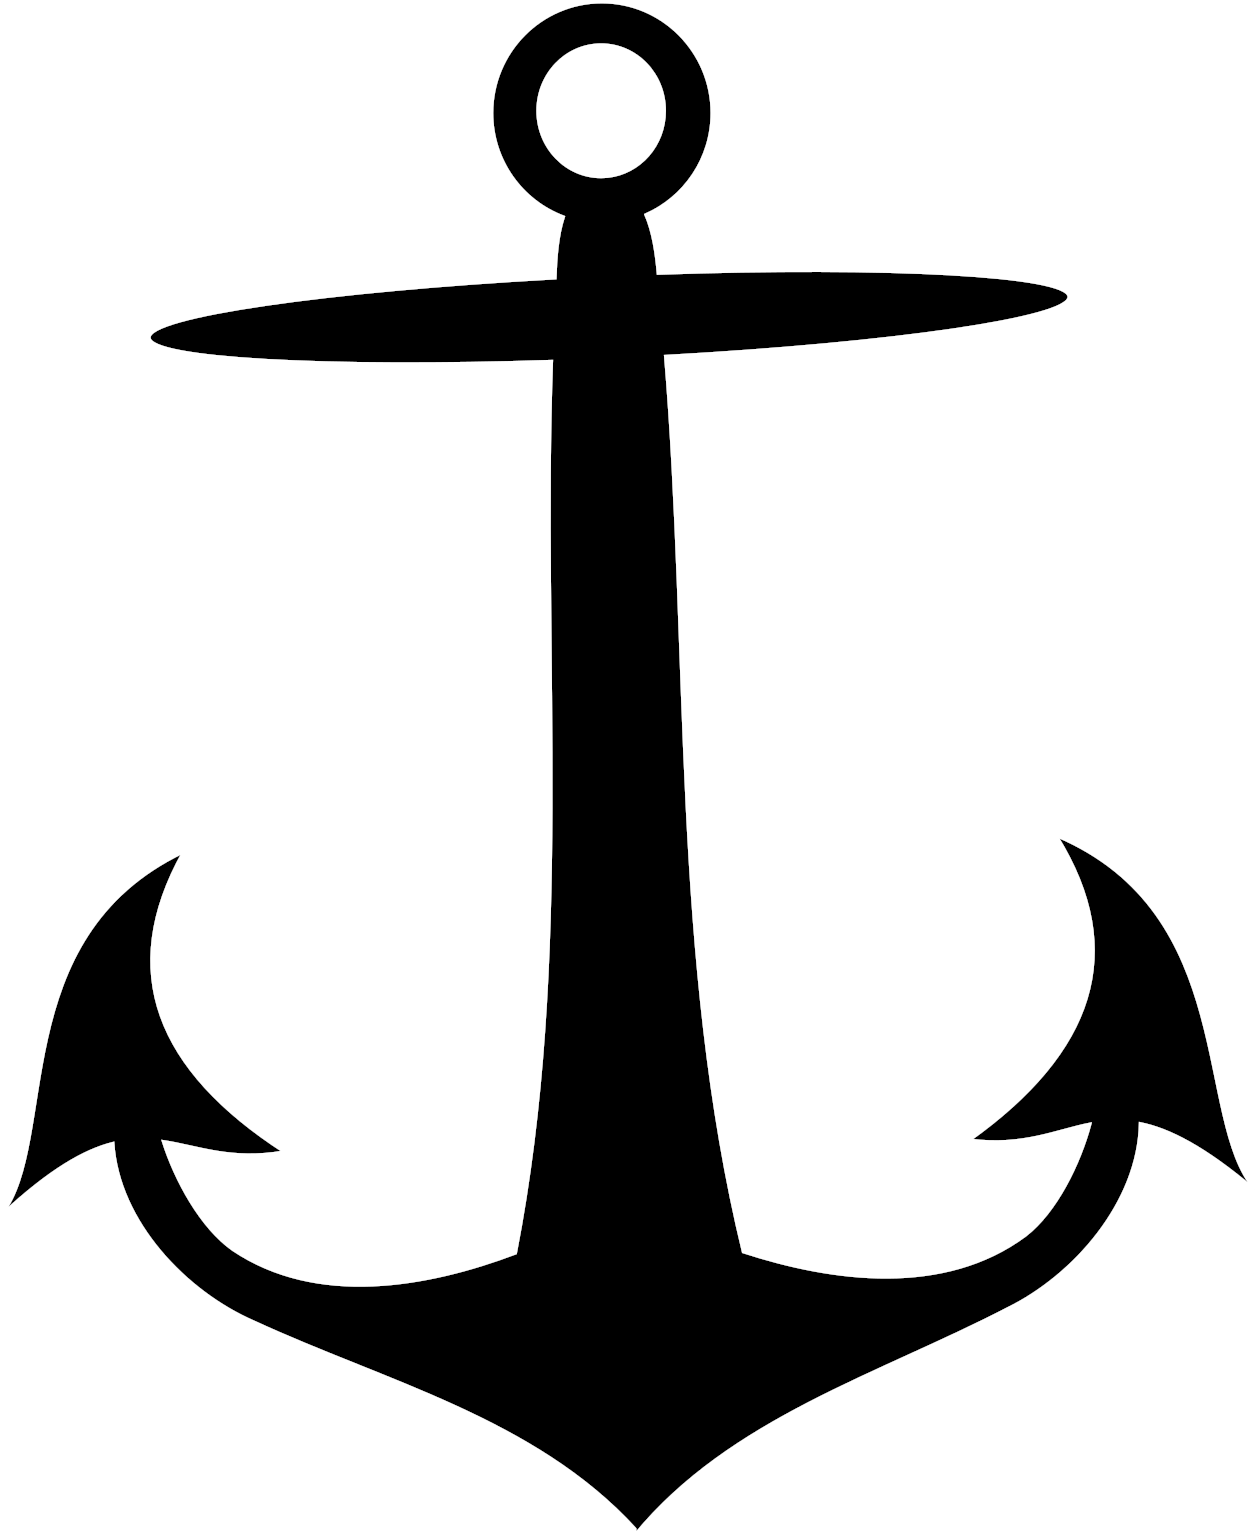 Anchor clipart transparent background clip freeuse HD Vector Transparent Download Anchor Clipart Transparent - Boat ... clip freeuse